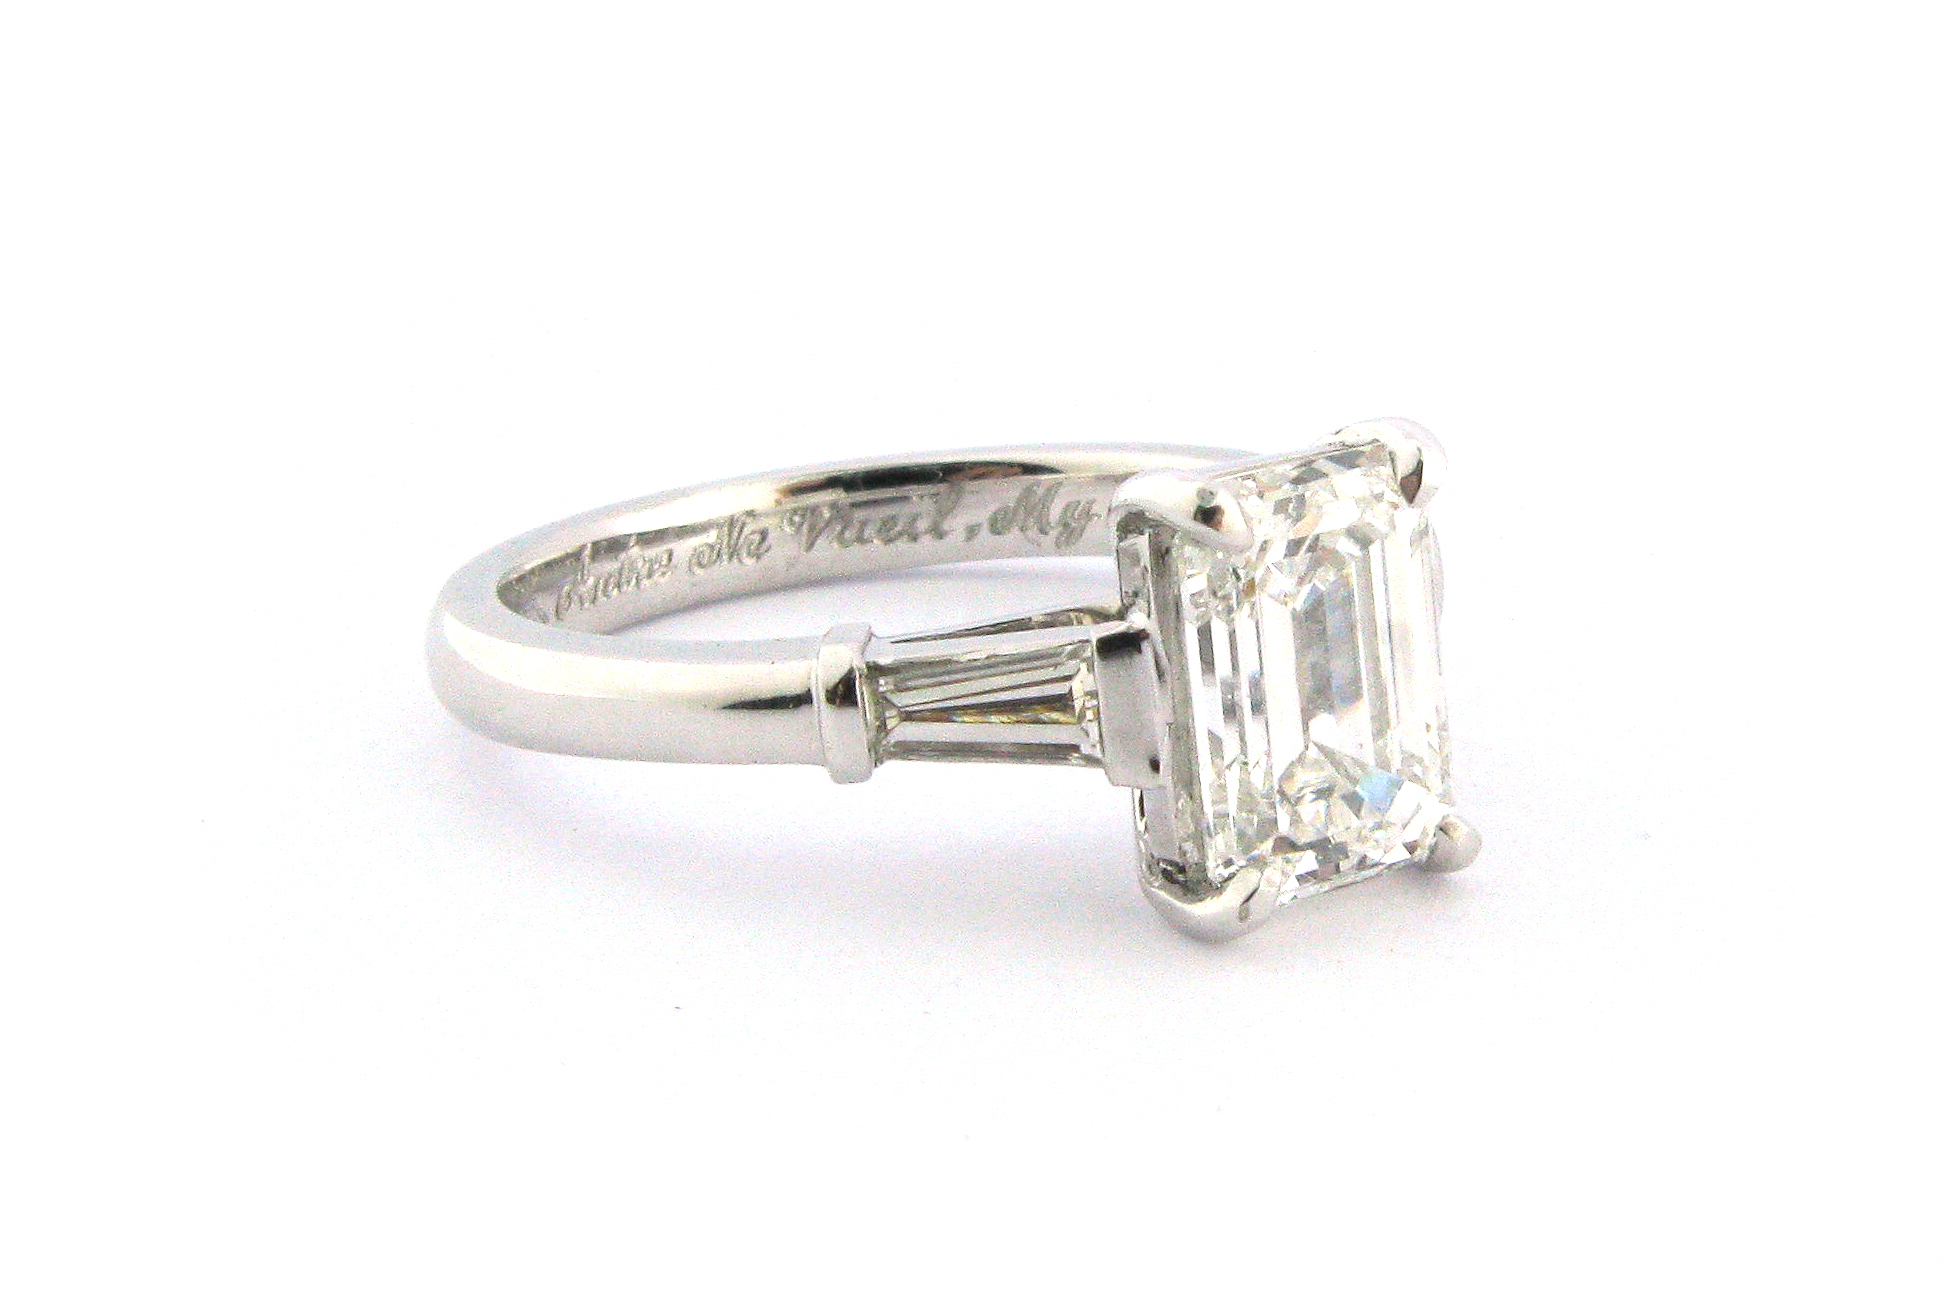 Emerald Cut Diamond With Tapered Baguette Side Stones Regarding Heart Shaped Engagement Rings With Tapered Baguette Side Stones (Gallery 23 of 25)